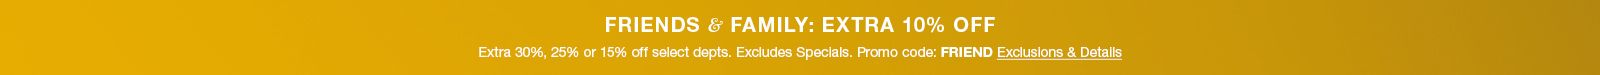 Friends and Family; Extra 10 percent Off, Extra 30 percent, 25 percent or 15 percent off select department, Excludes Specials Promo code: Friend Exclusions and Details